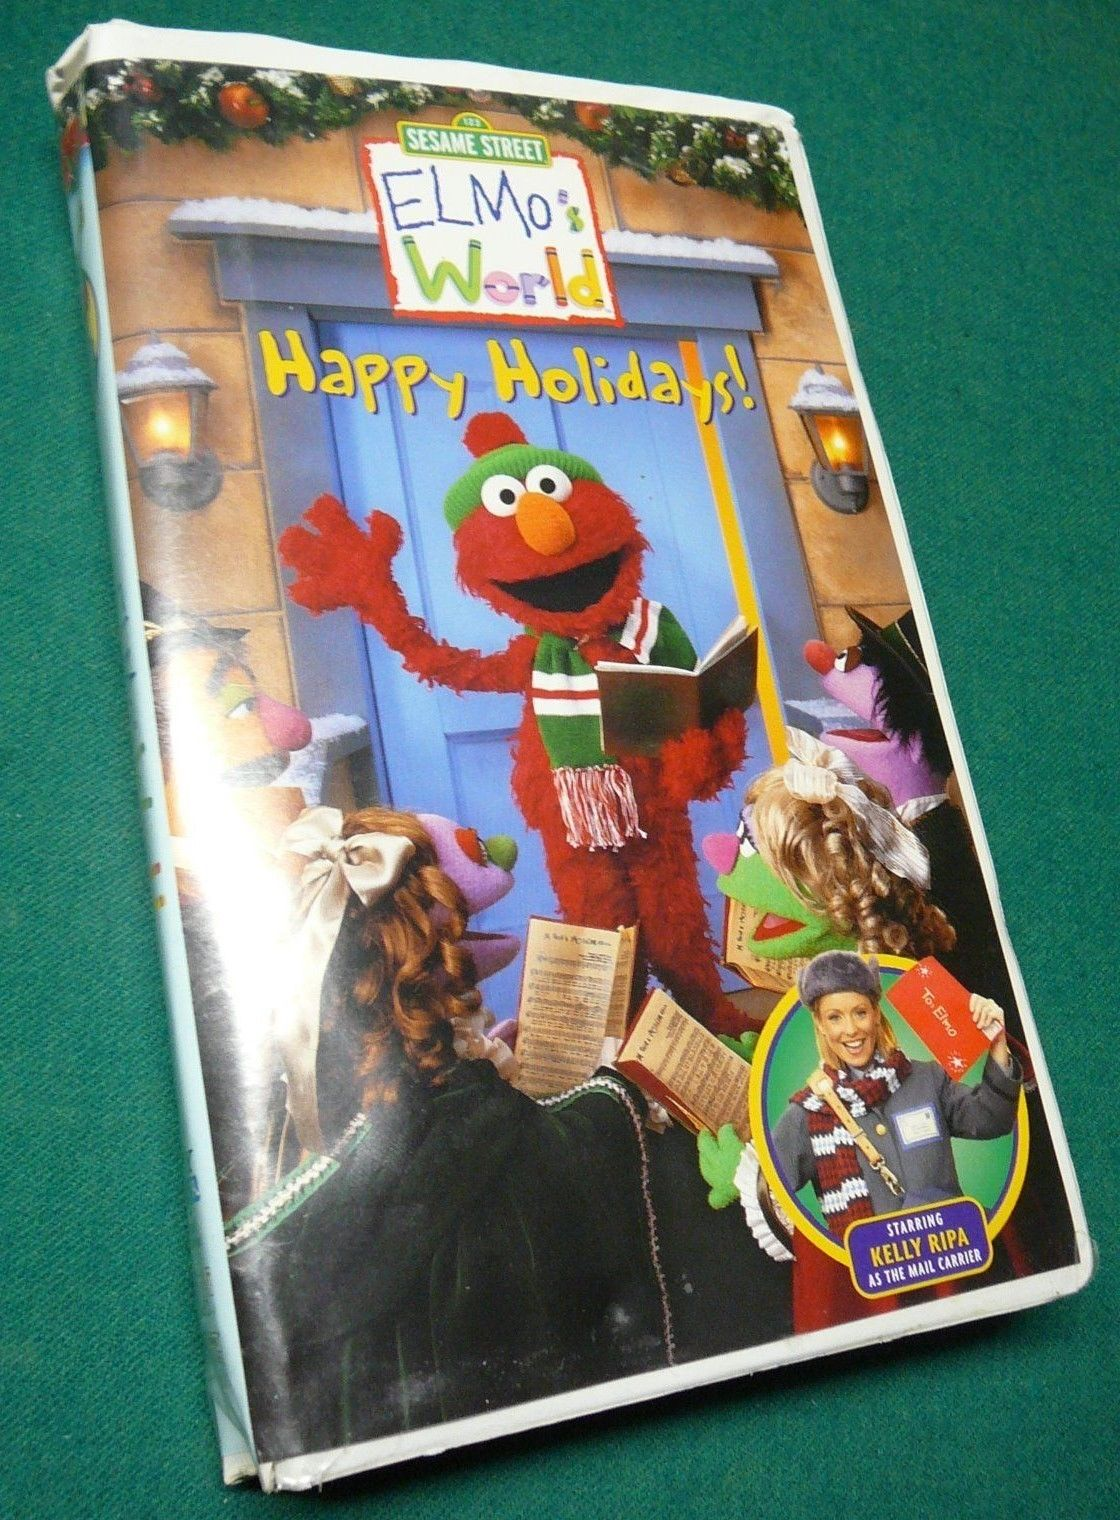 opening to elmo's world: happy holidays 2000 vhs (columbia tristar